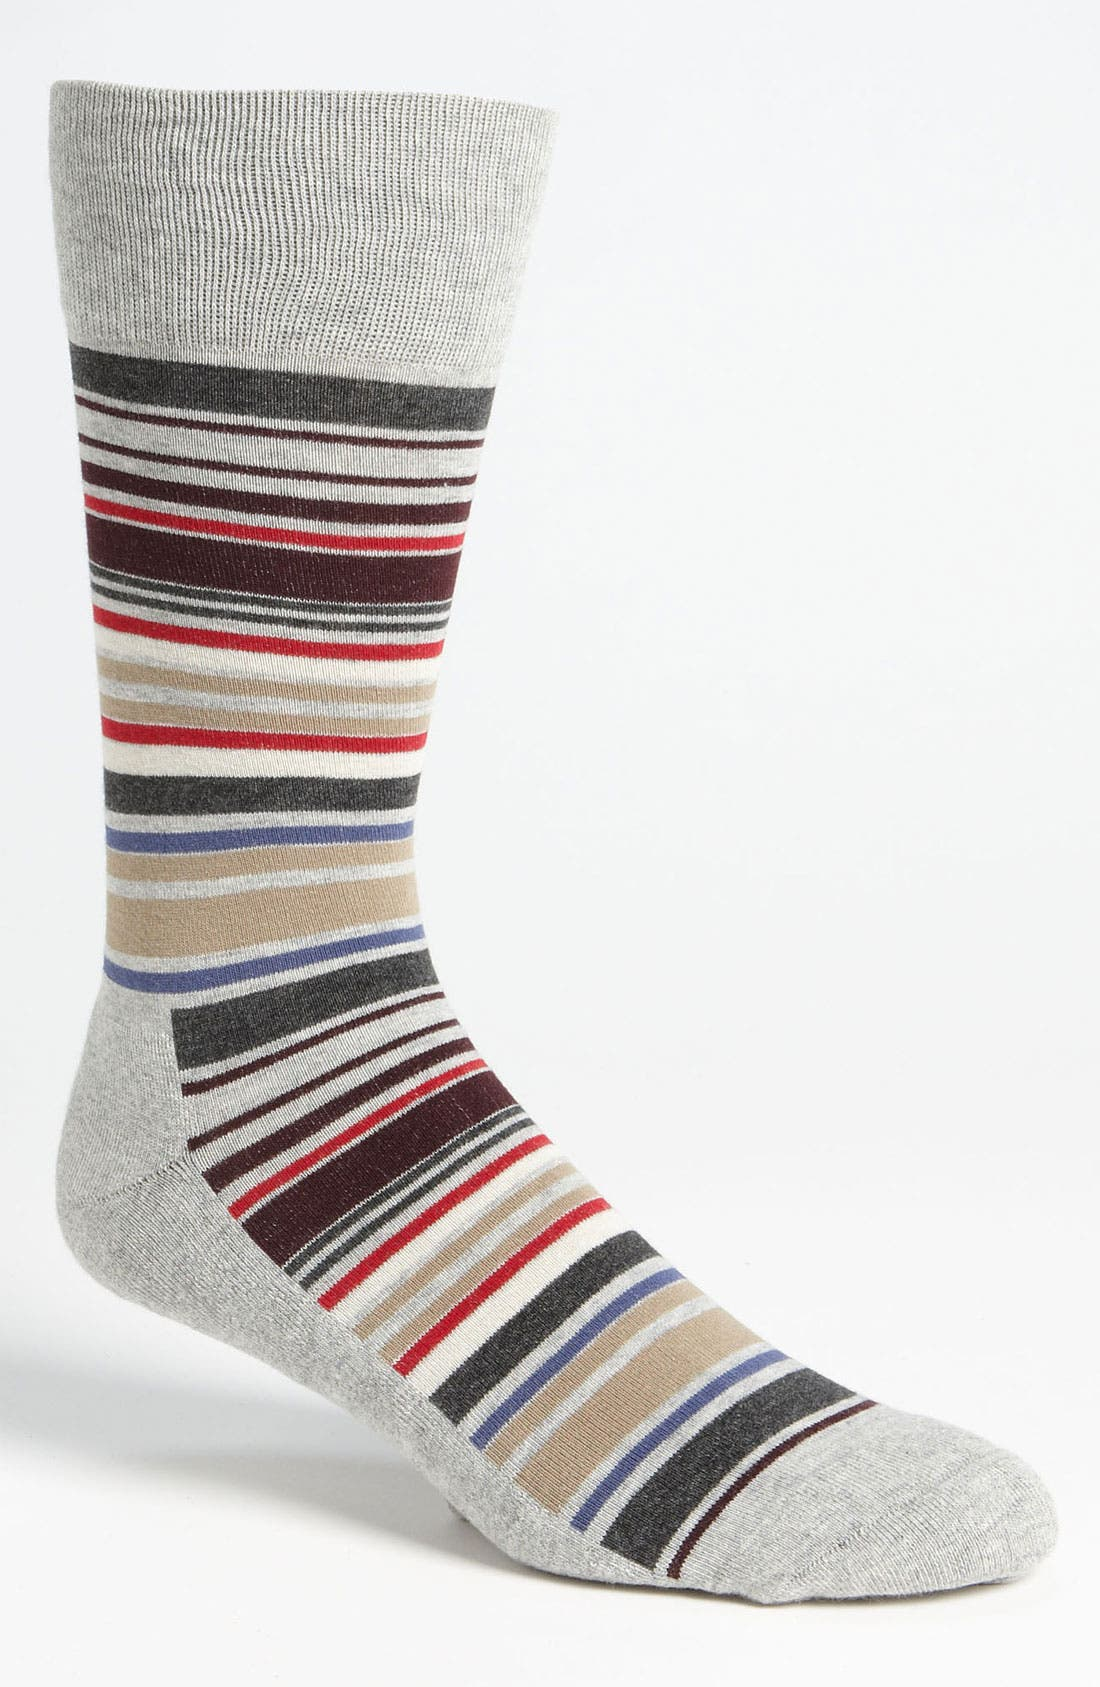 Alternate Image 1 Selected - Nordstrom Cushioned Multi Stripe Socks